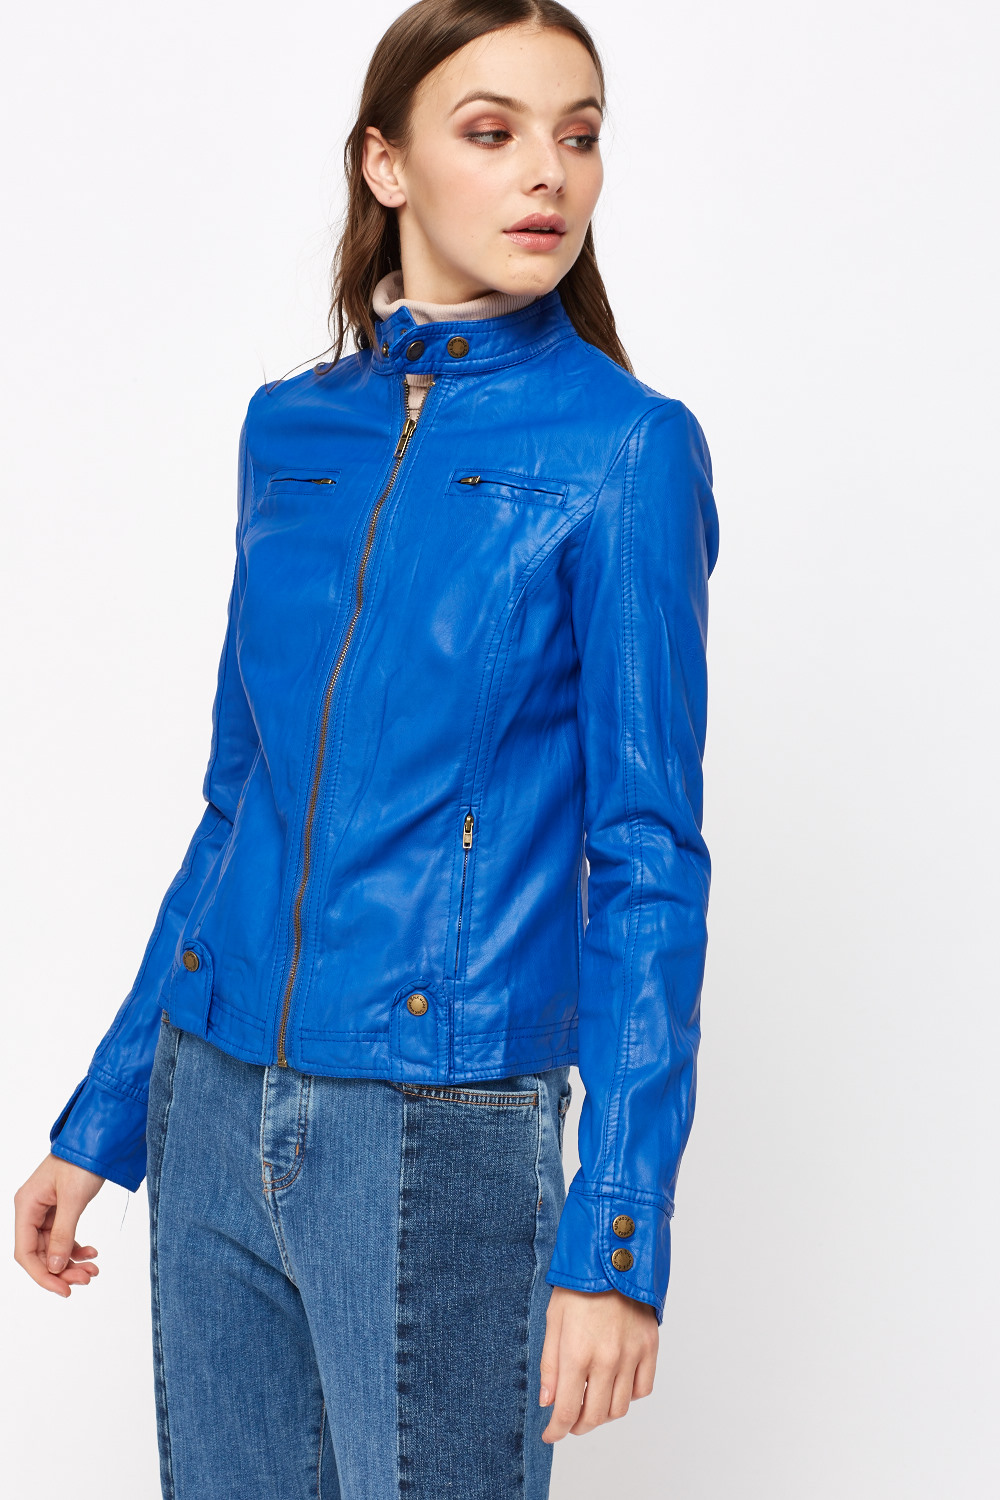 Royal Blue Faux Leather Jacket Just 163 5